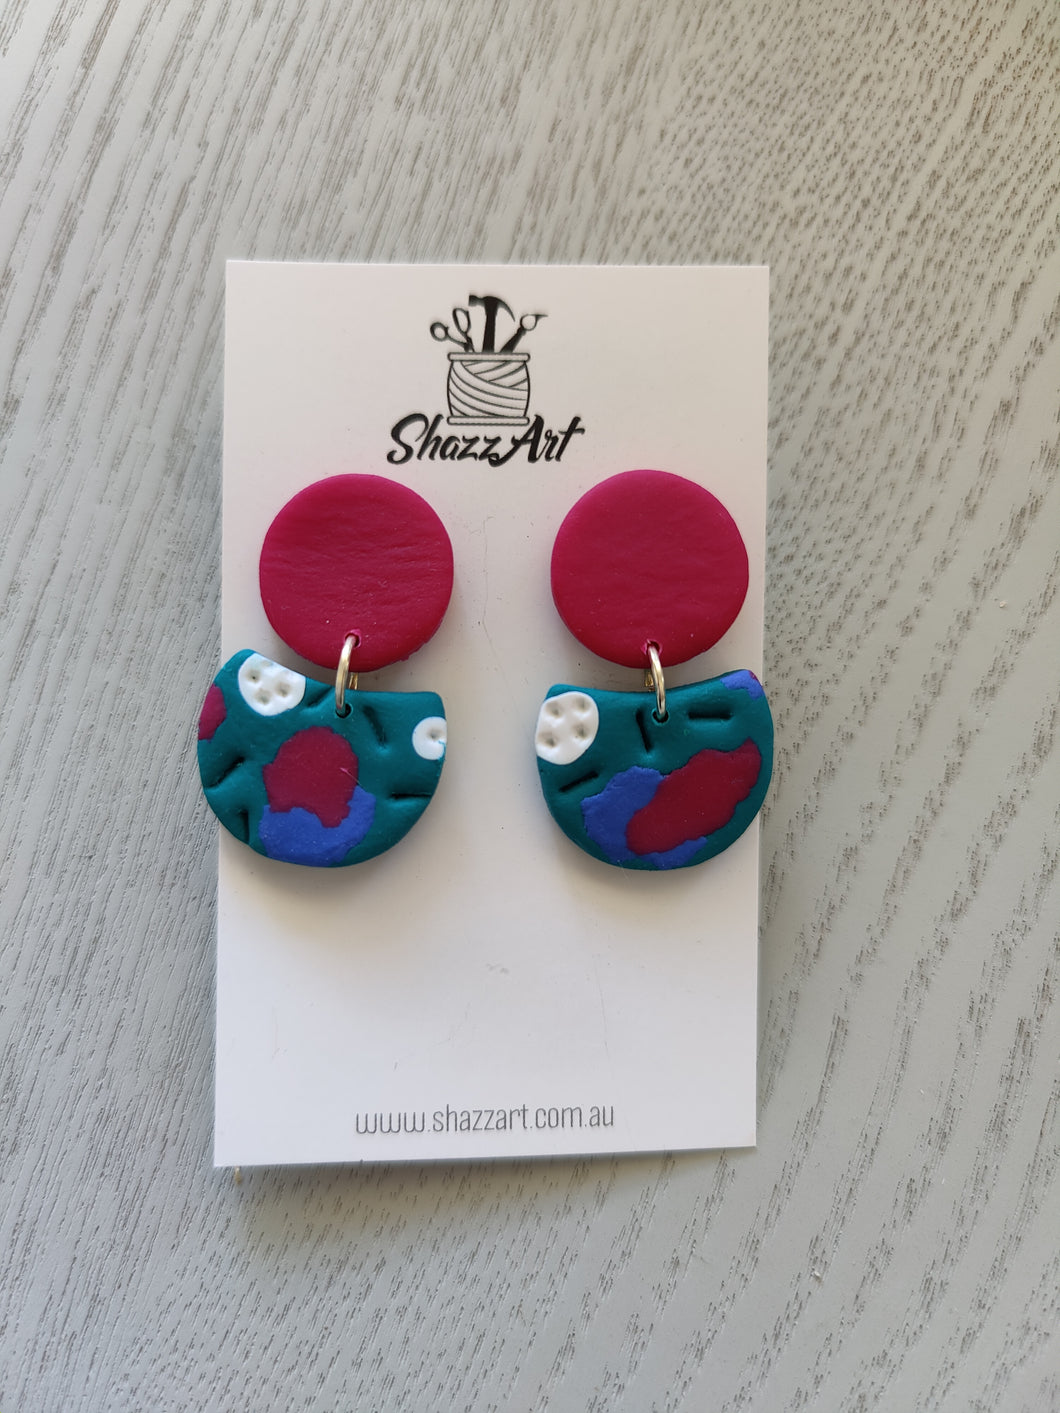 Dark Pink and Teal Studs - Shazz Art